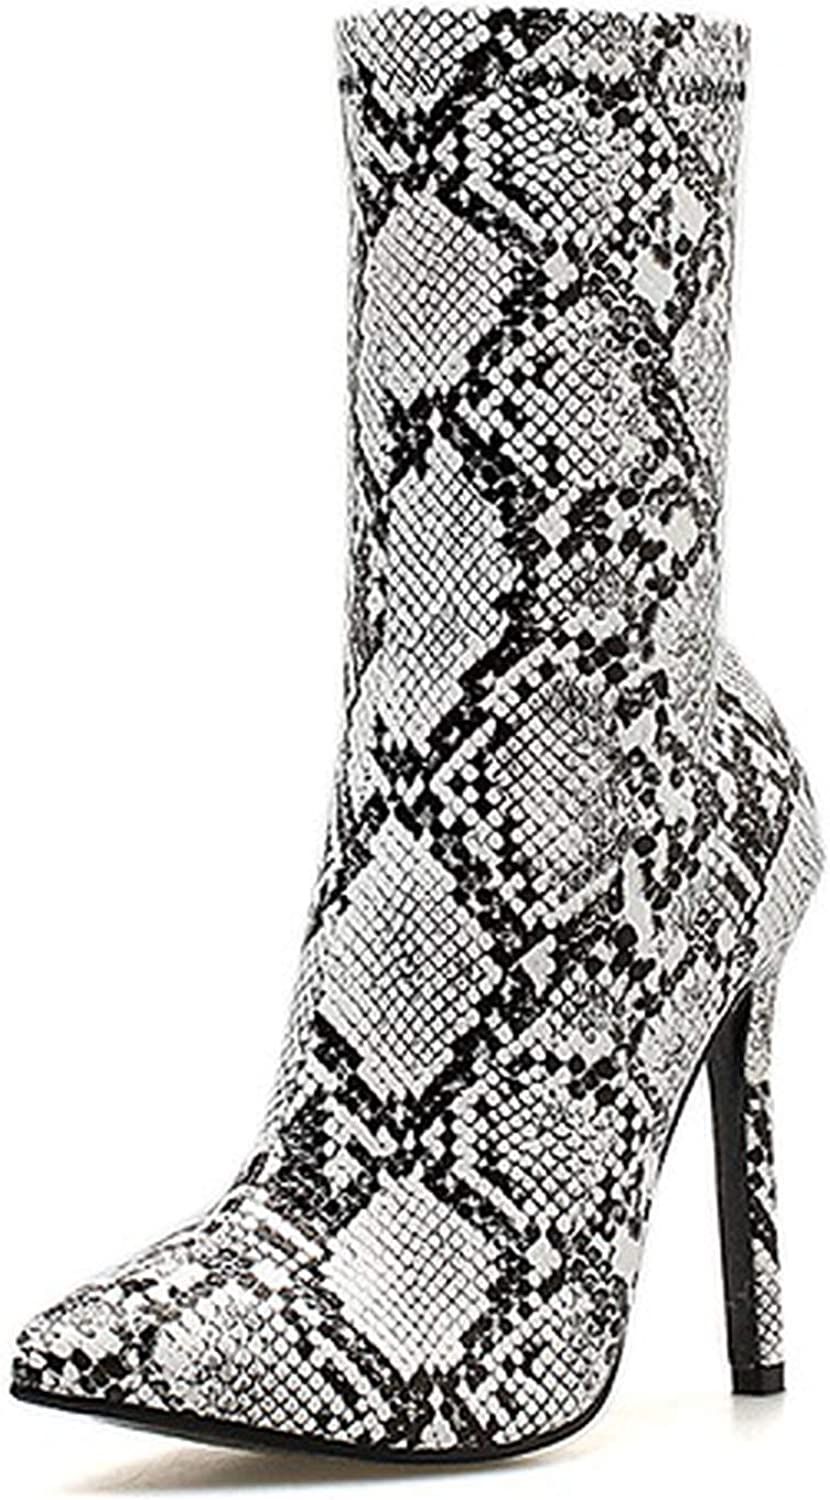 IOJHOIJOIJOIJMO Women Zipper Boots Snake Print Ankle Boots High Heels Fashion Pointed Toe Ladies Sexy shoes 2019